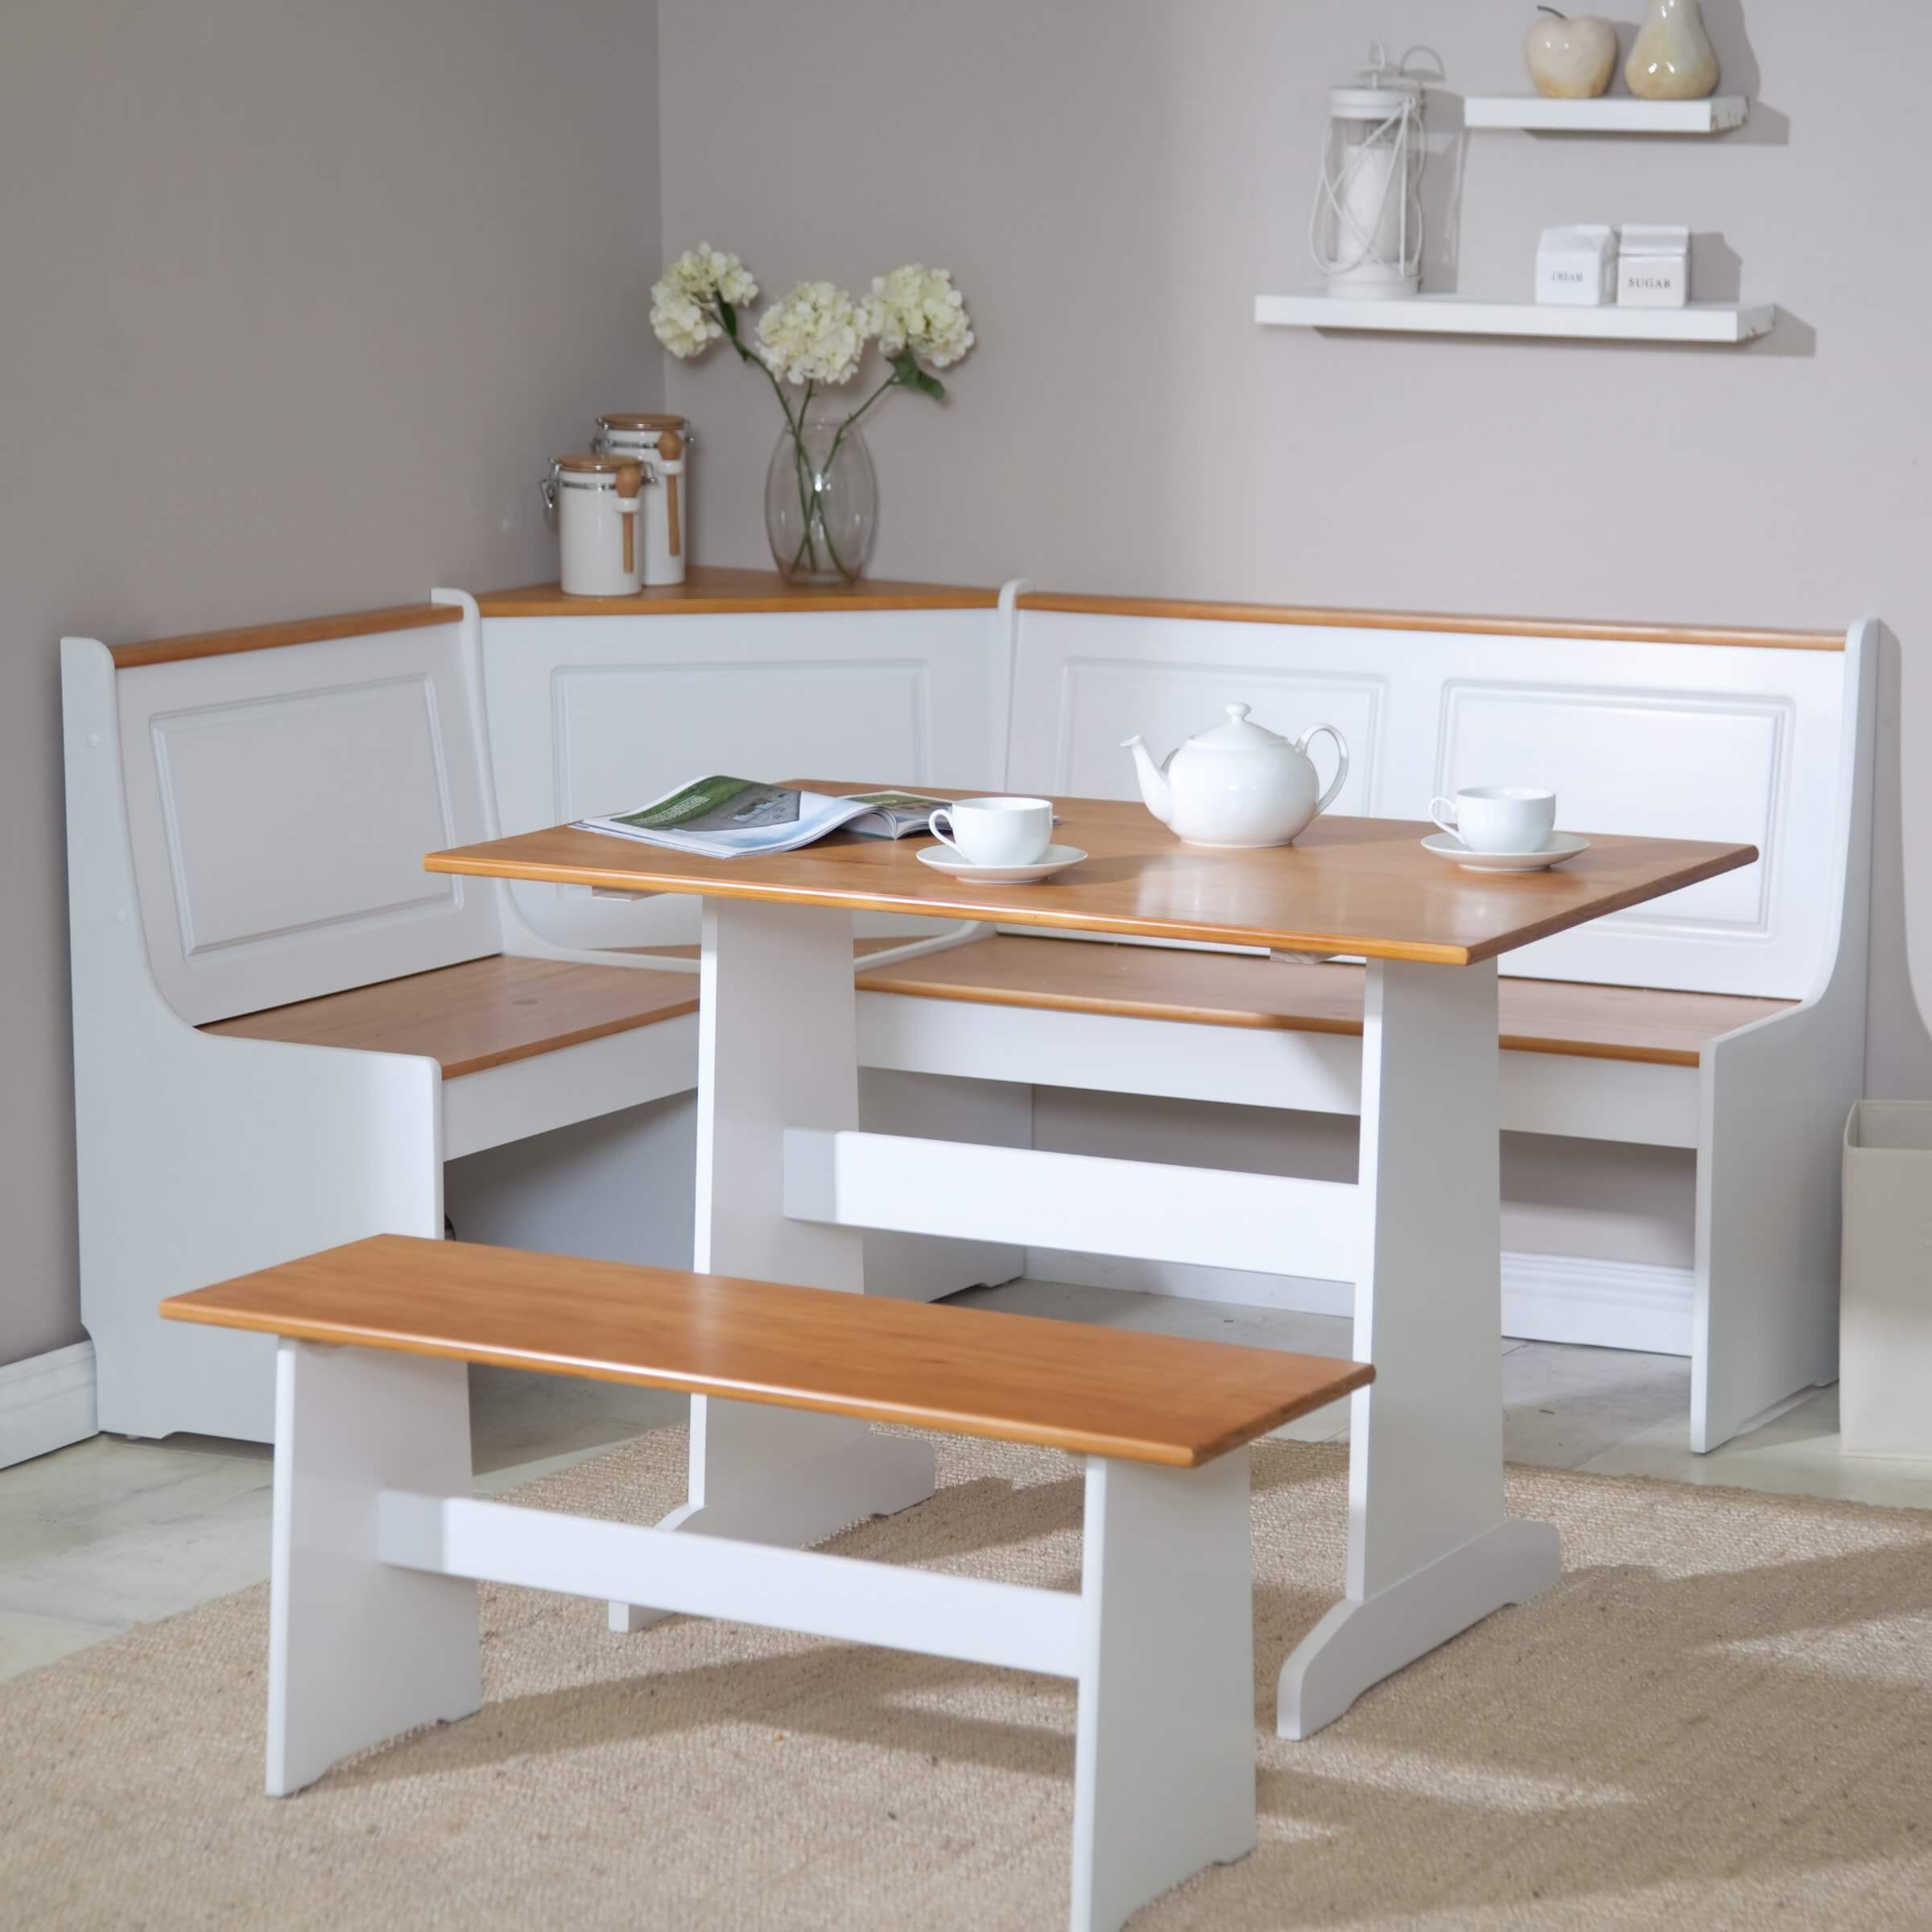 This three piece breakfast nook can help brighten up your space or fit in nicely with & Wow! 30 Space-Saving Corner Breakfast Nook Furniture Sets (2018)